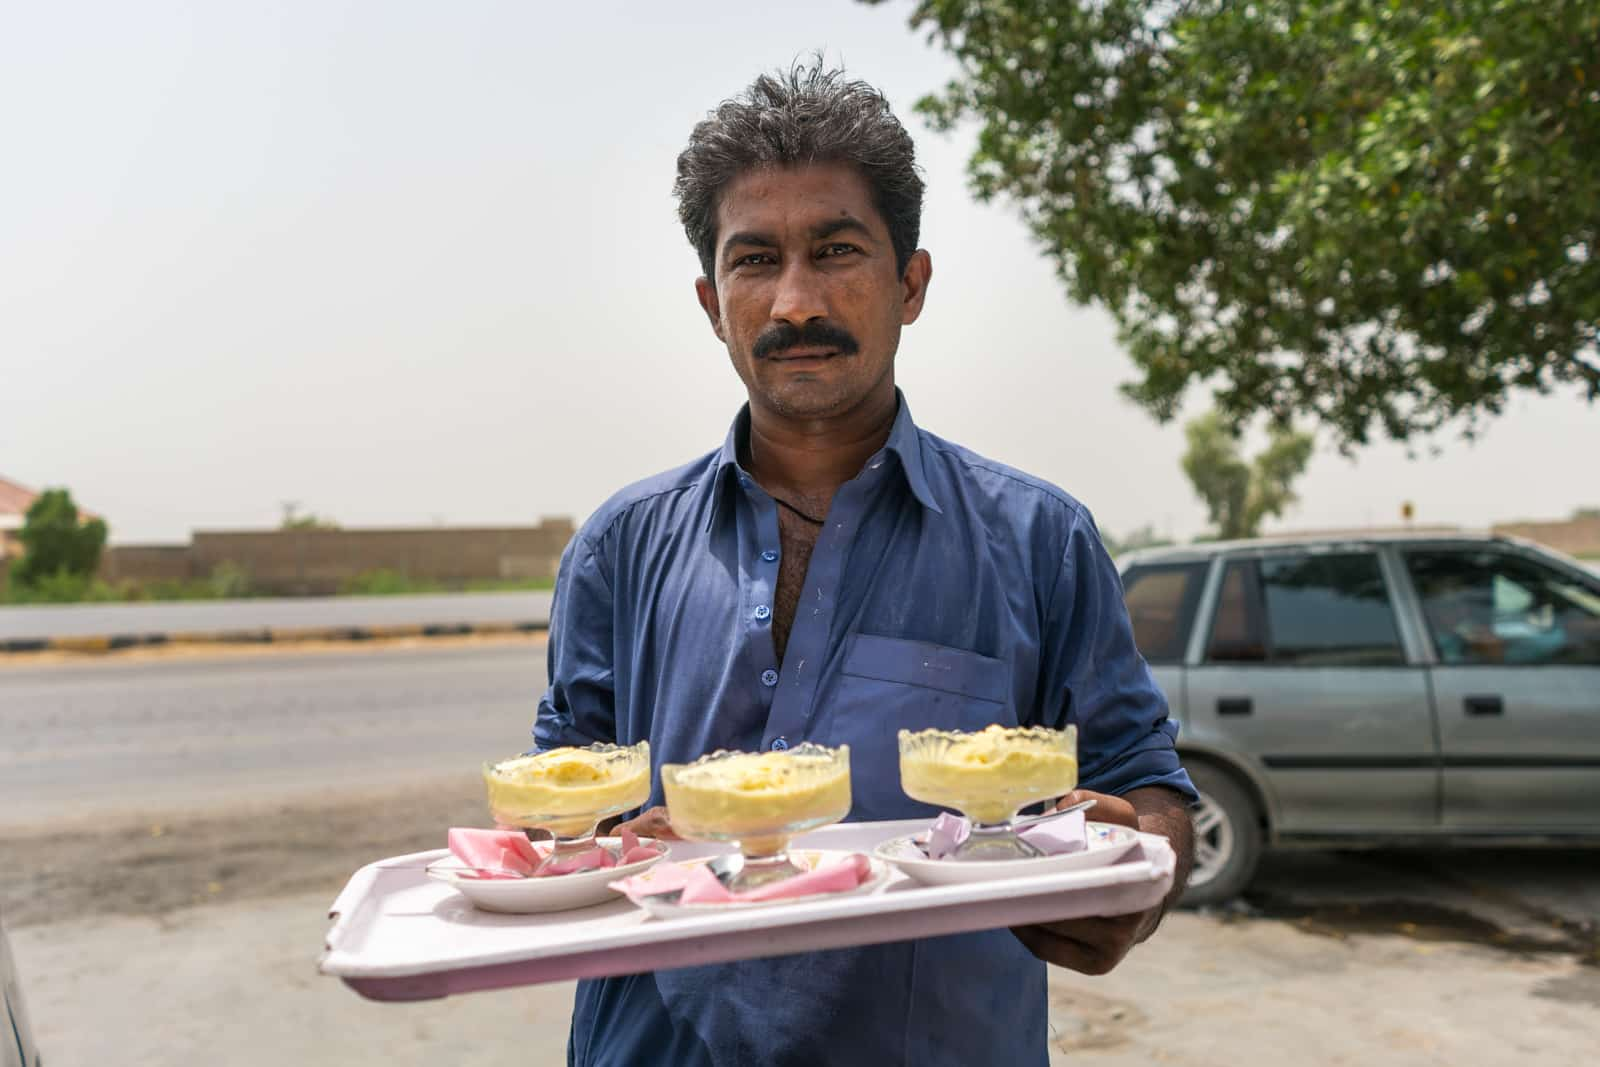 Sindh travel guide - Man serving ice cream in Matiari town - Lost With Purpose travel blog